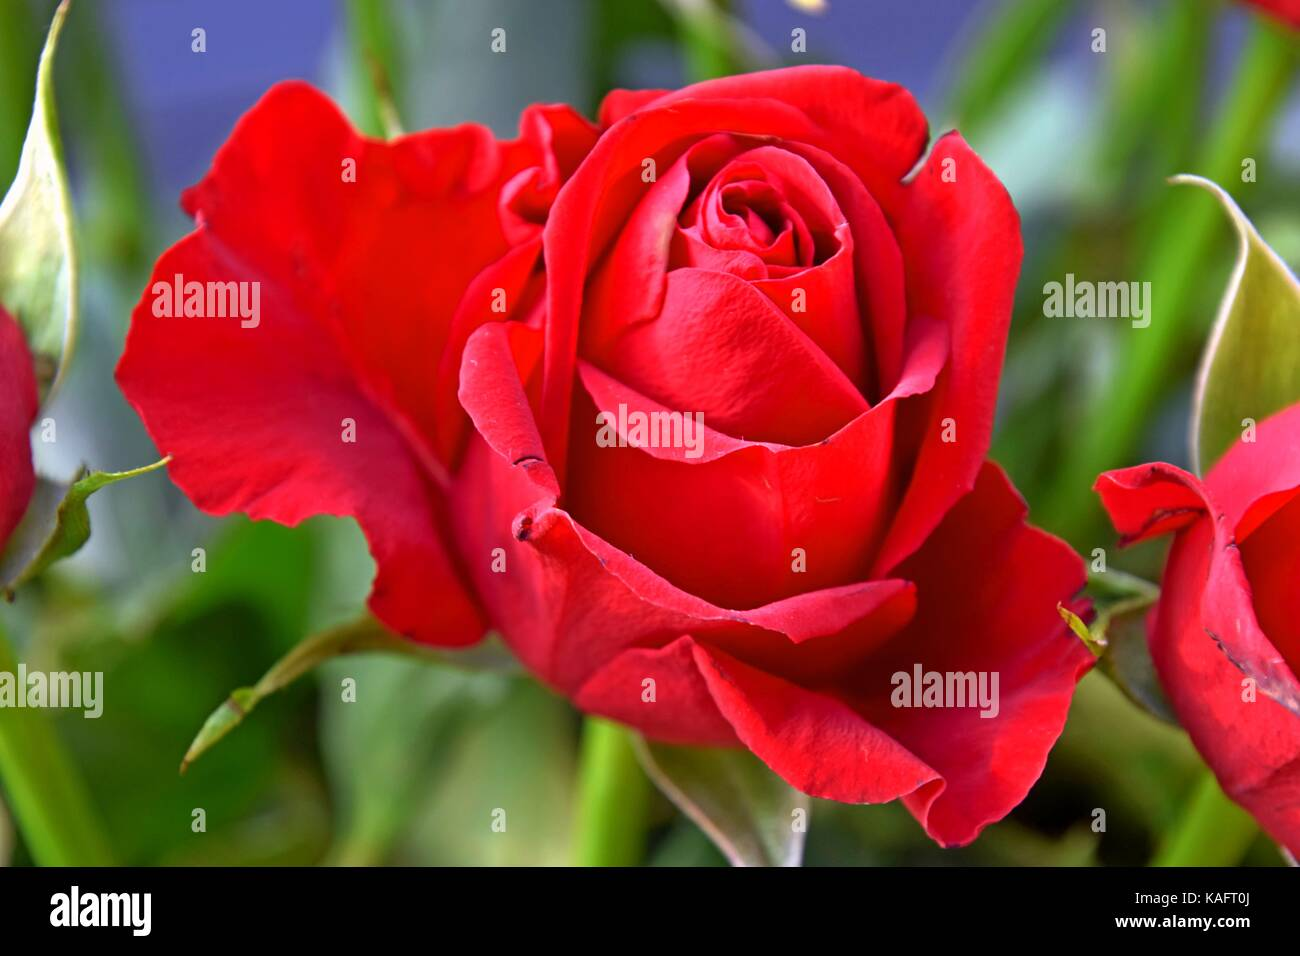 Roses are red perfect red roses symbol of love festivities day roses are red perfect red roses symbol of love festivities day of aniversary buycottarizona